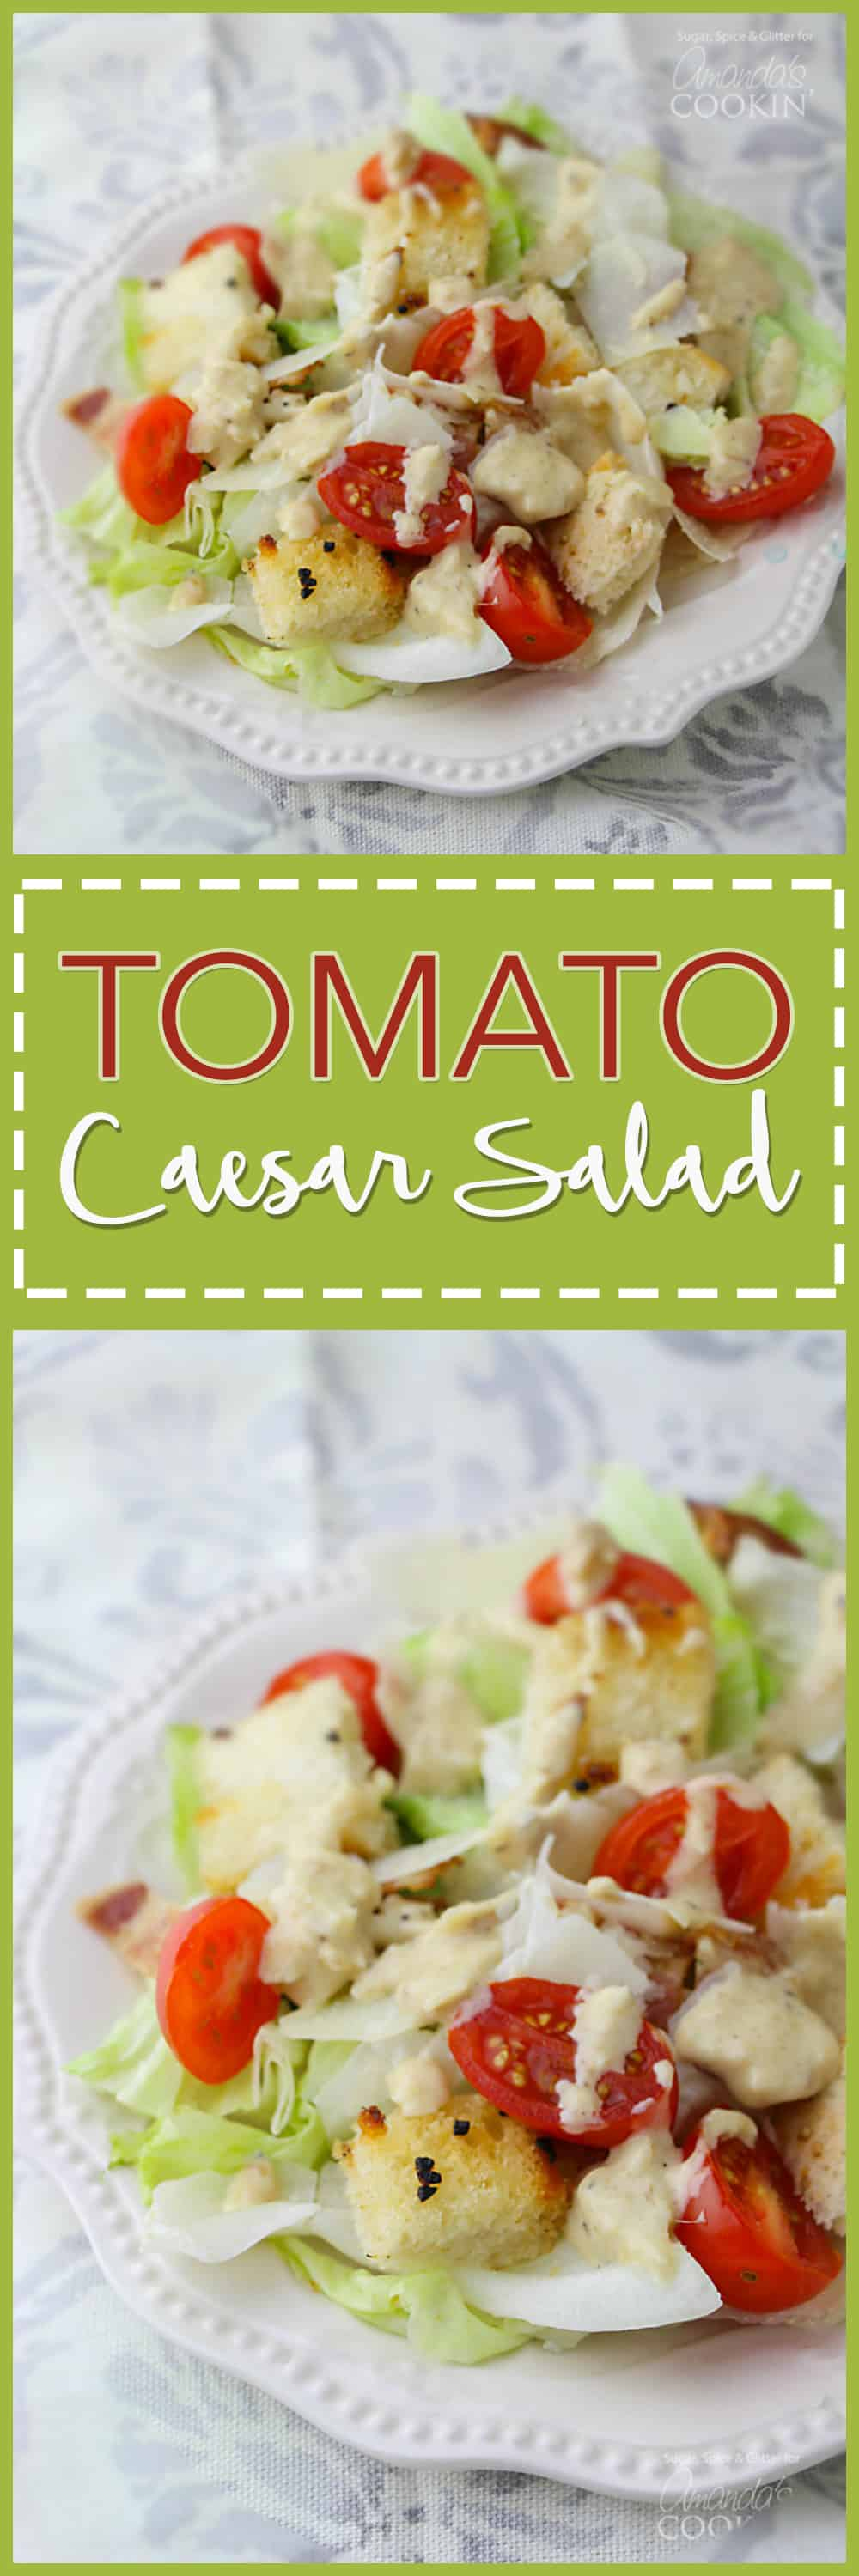 This Tomato Caesar Salad helps you achieve your healthy eating goals in a delicious and sustainable way. Make your own dressing to help with your goals.